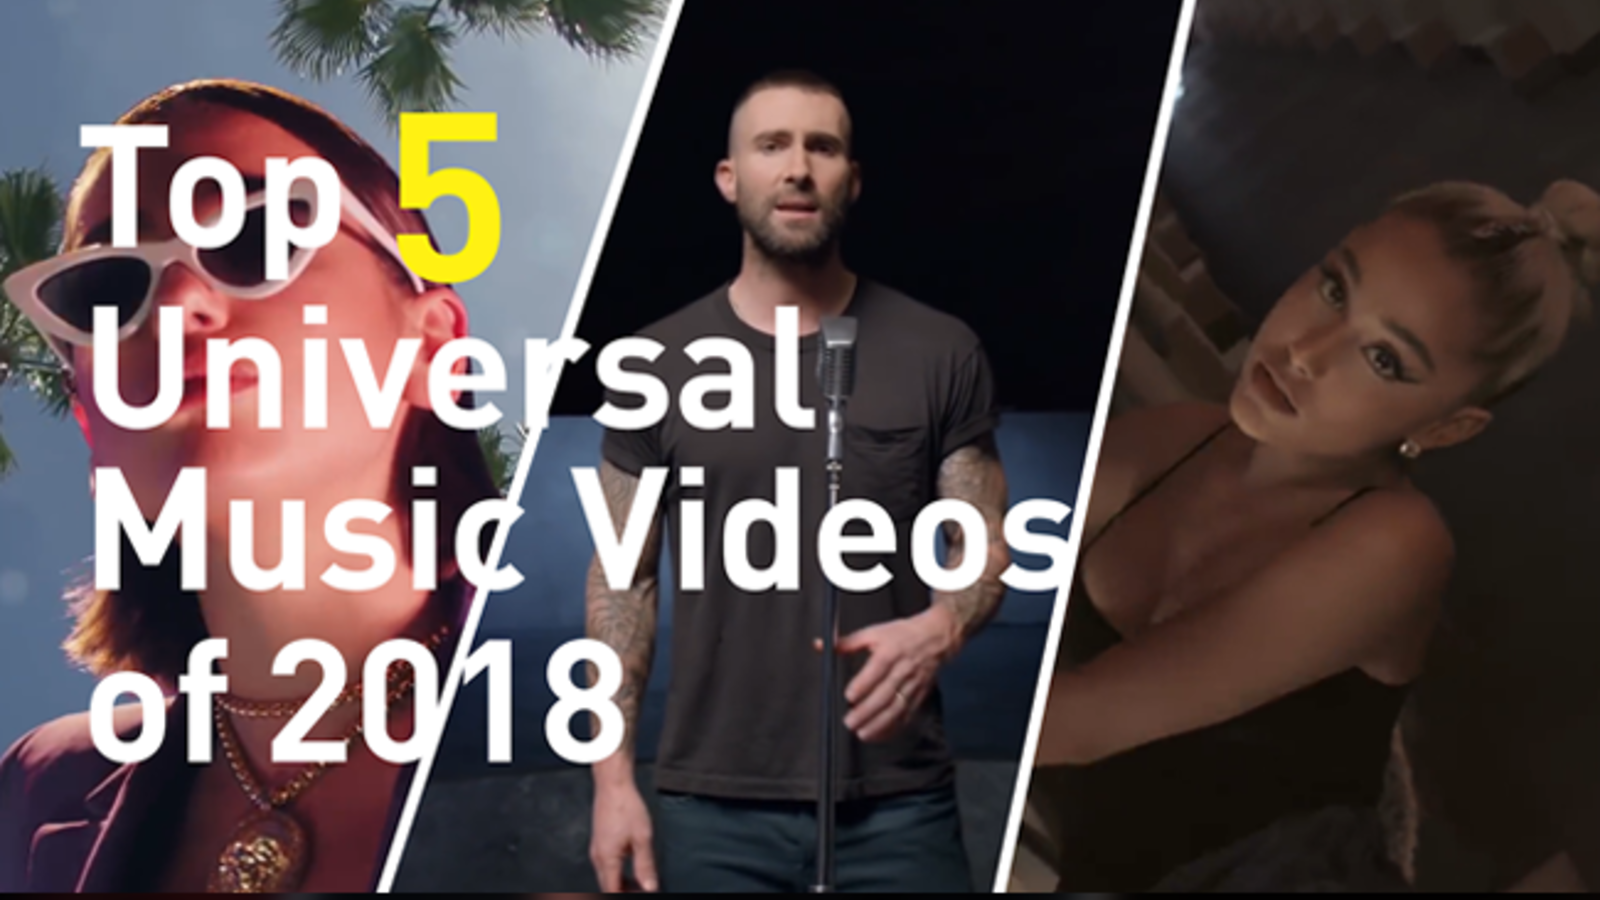 Here are our top 5 picks of universal music videos that were highly viewed and celebrated in 2018.